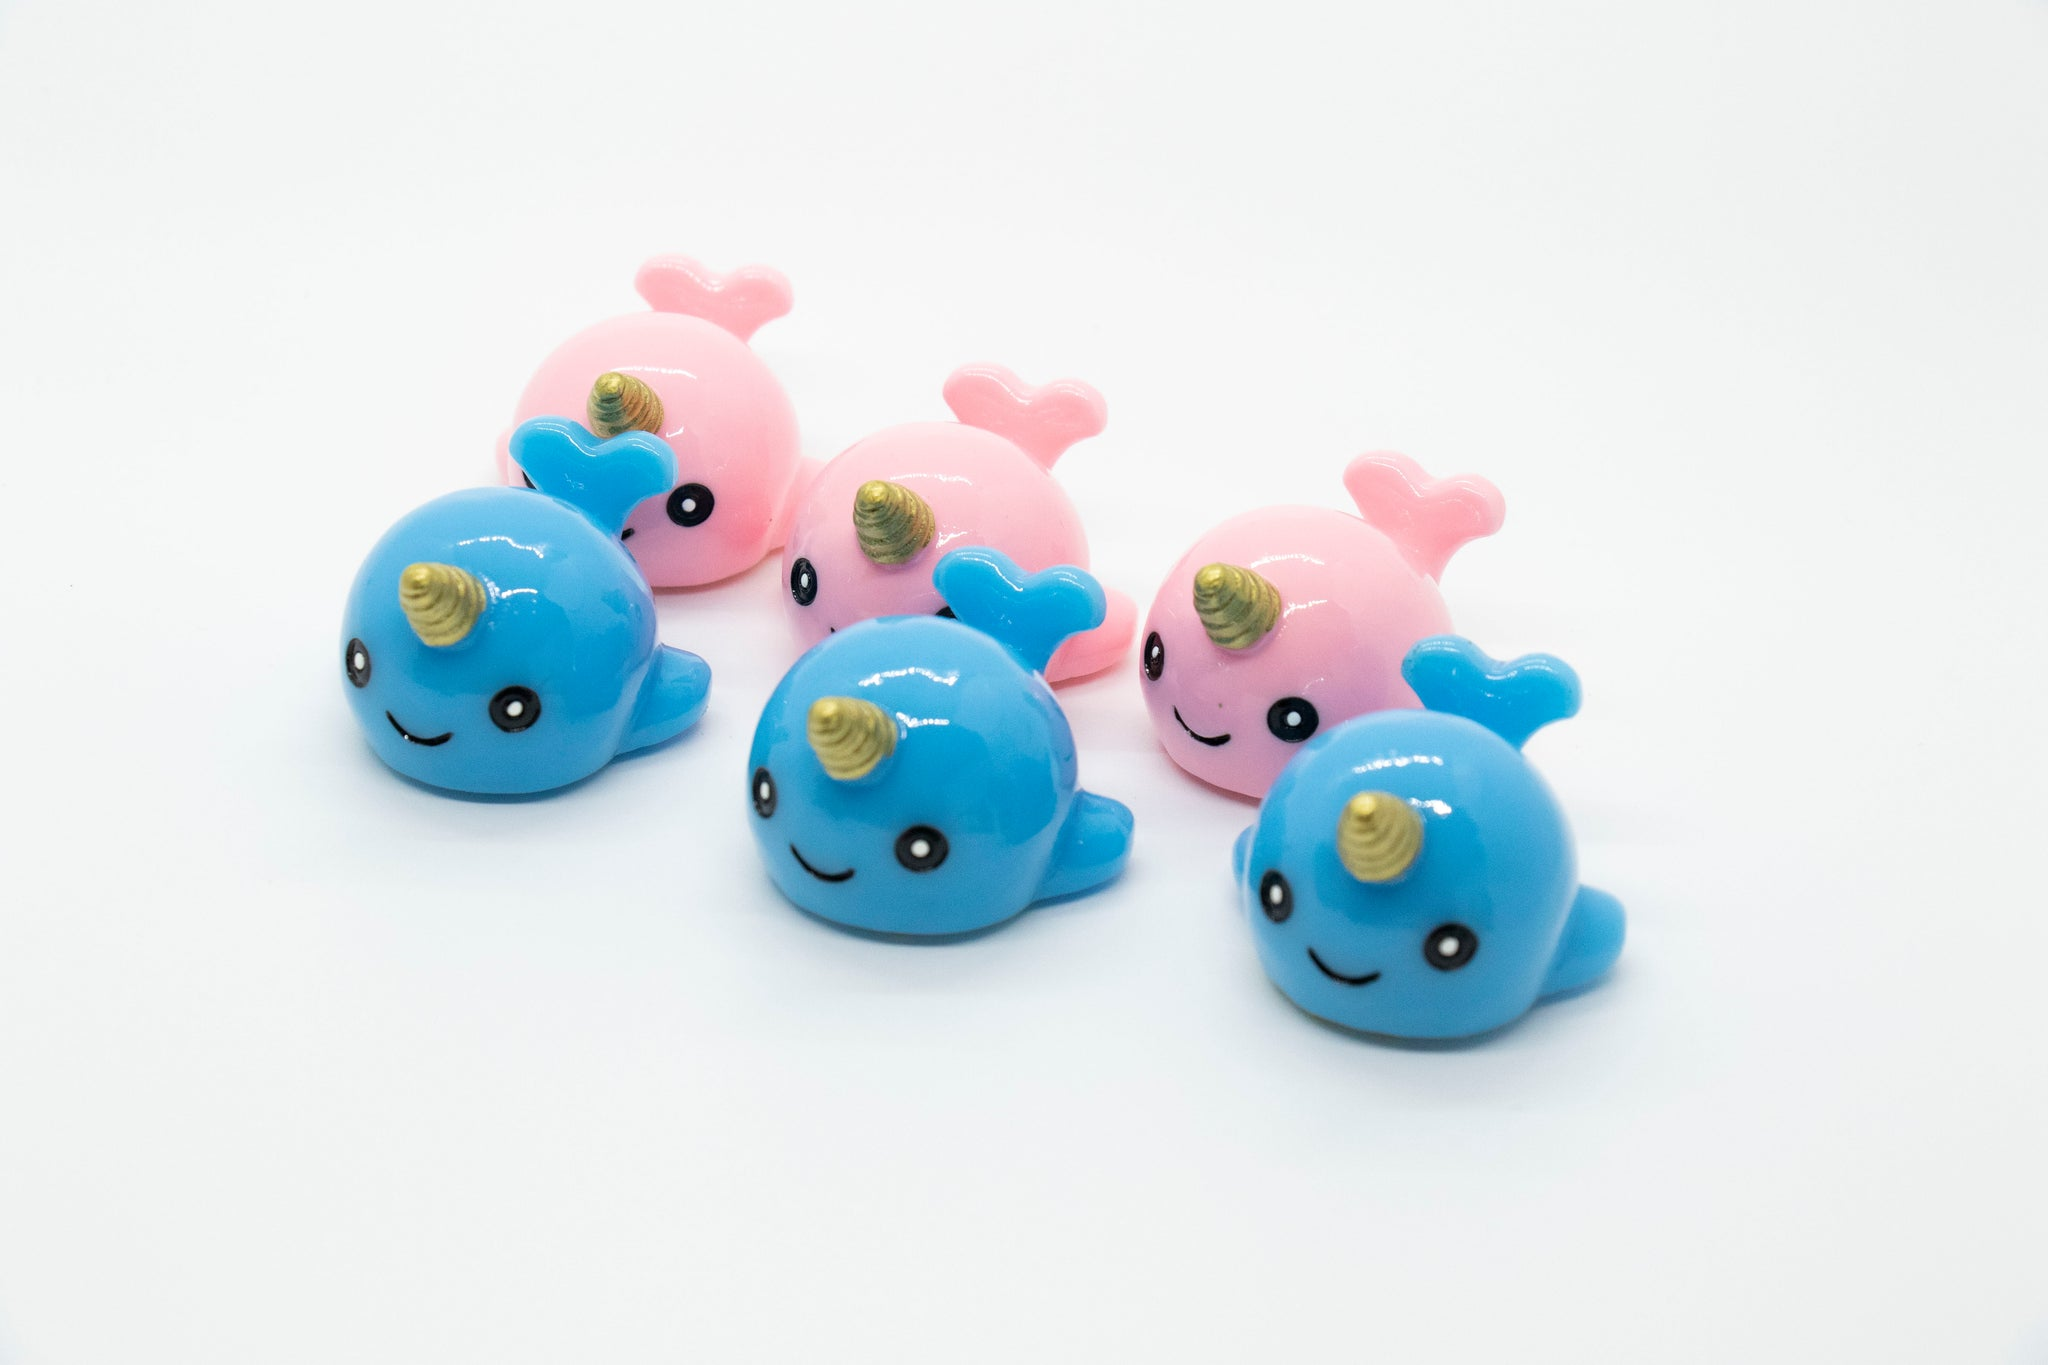 Narwhal Glossy Grin Cute Lip Balm Containers- DIY Empty refillable containers